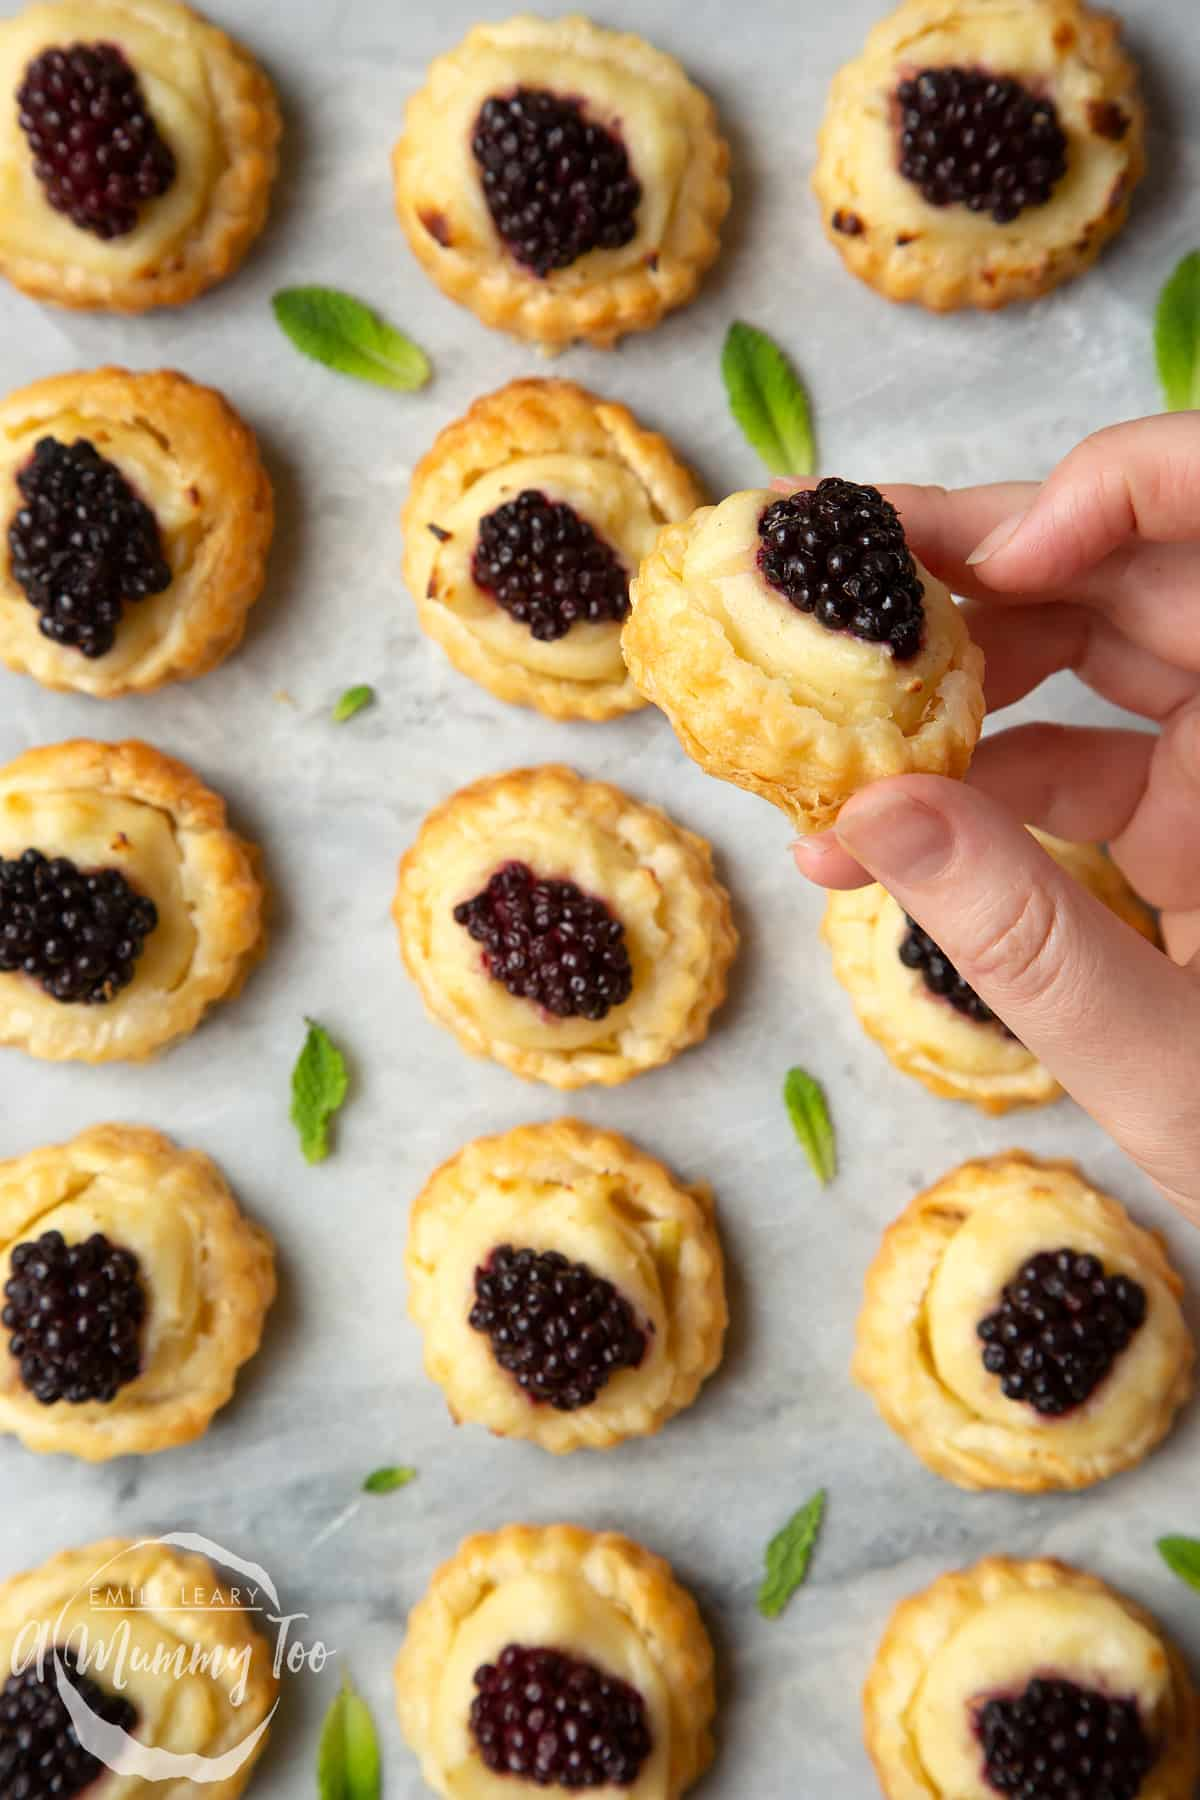 A hand holds a blackberry tartlet, comprised of a small puff pastry disc topped with sliced apple, pastry cream and a blackberry. More blackberry tartlets sit on the marble board in the background.